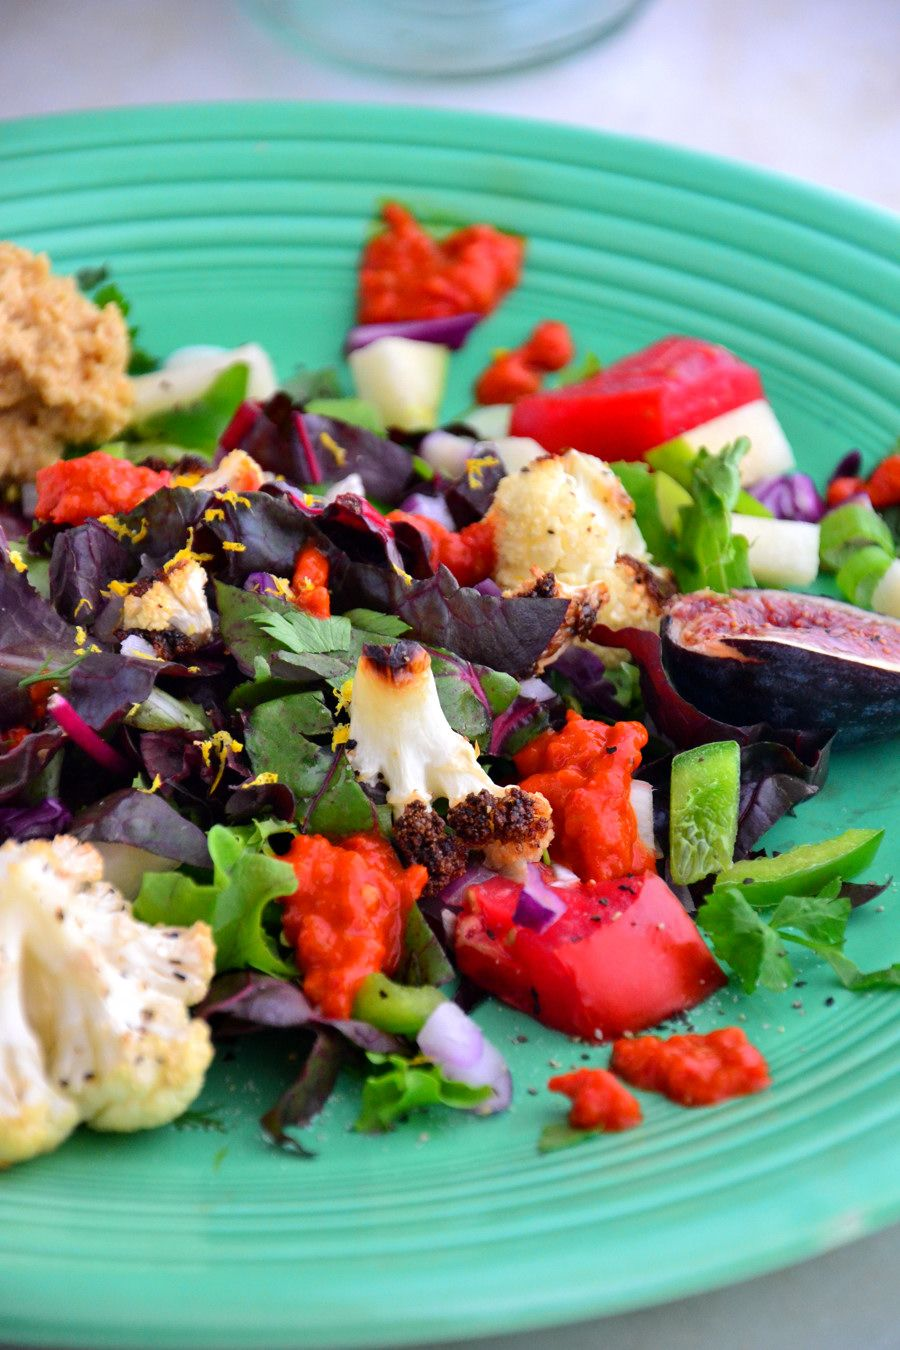 Simple Summer Cauliflower Swiss Chard Salad Gluten Free Dairy Free Vegan Paleo